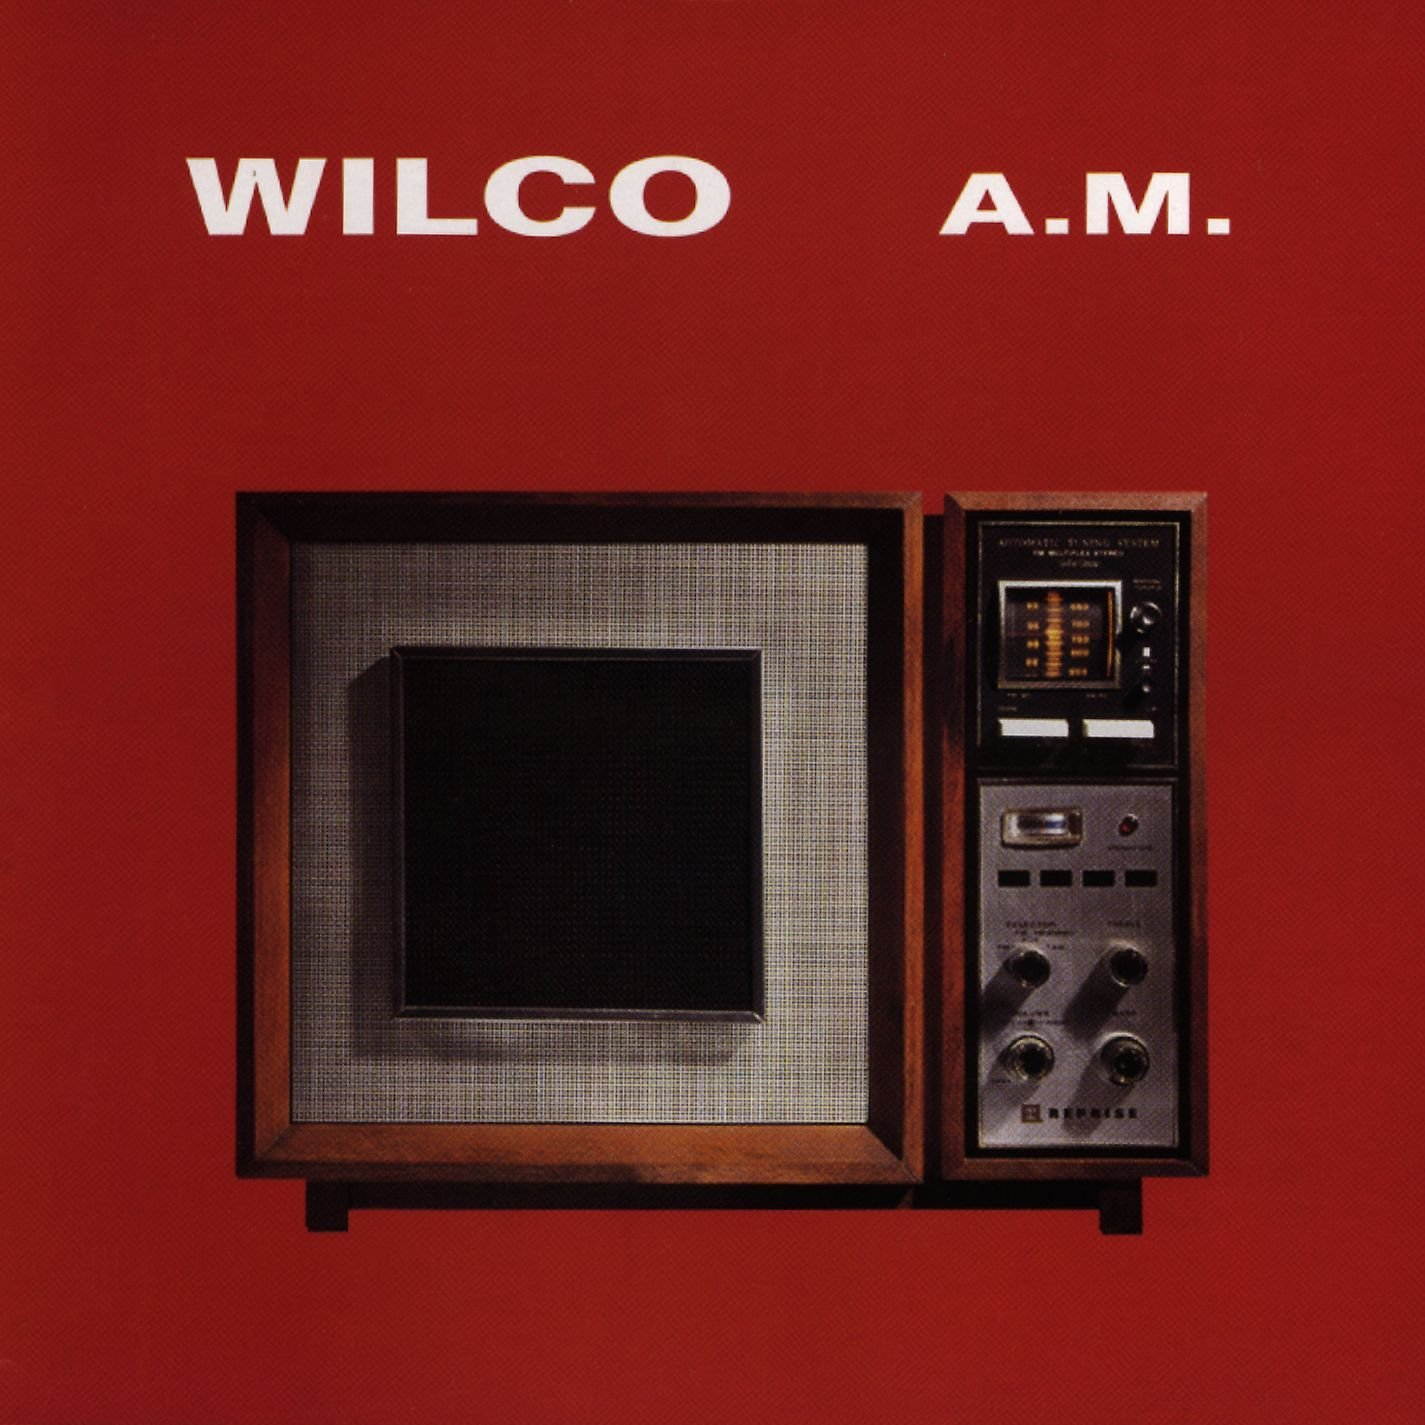 """I've always associated Wilco's entire existence as only existing when I was an adult human, even though I've always known the math of that doesn't add up. Feels weird to know that I technically could have been into them since I was 12 years old."" - - JEREMY / @HI54LOFI"